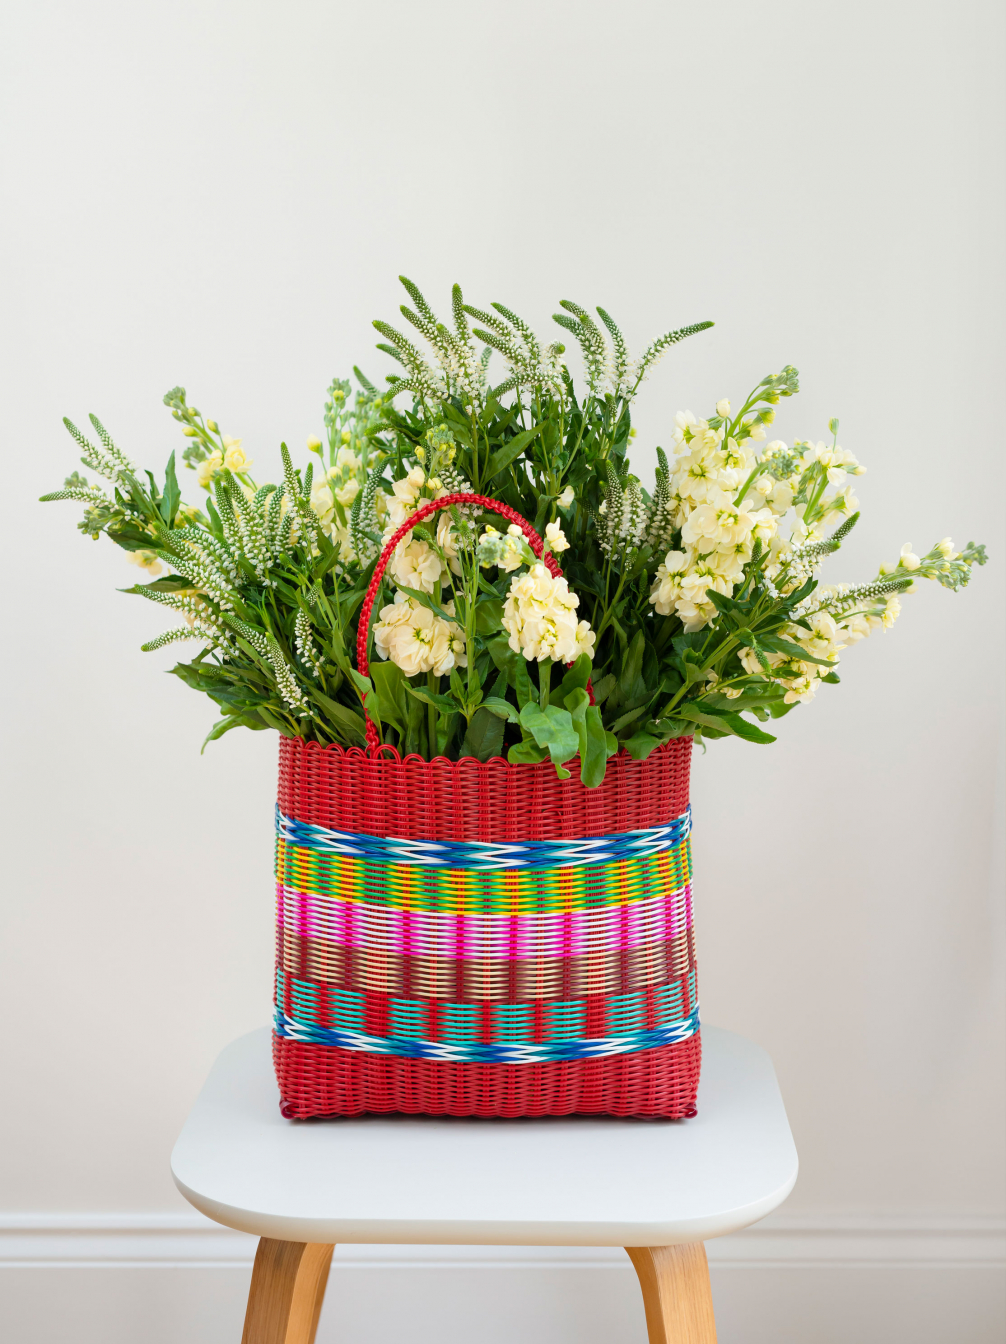 Fairtrade Large Woven Baskets